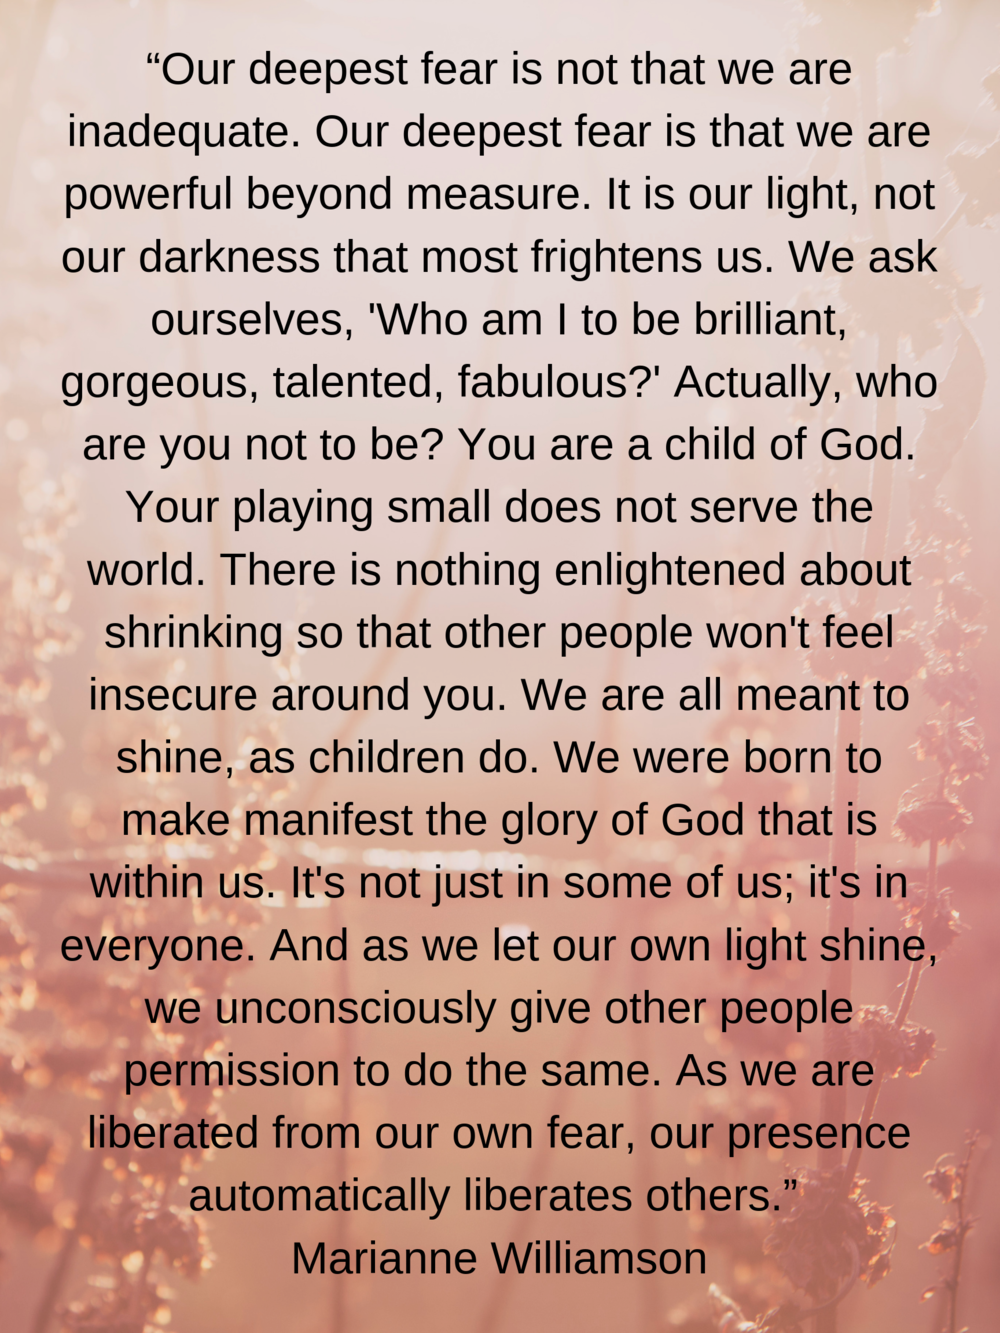 """""""Our deepest fear is not that we are inadequate. Our deepest fear is that we are powerful beyond measure. It is our light, not our darkness that most frightens us. We ask ourselves, 'Who am I to be bril.png"""